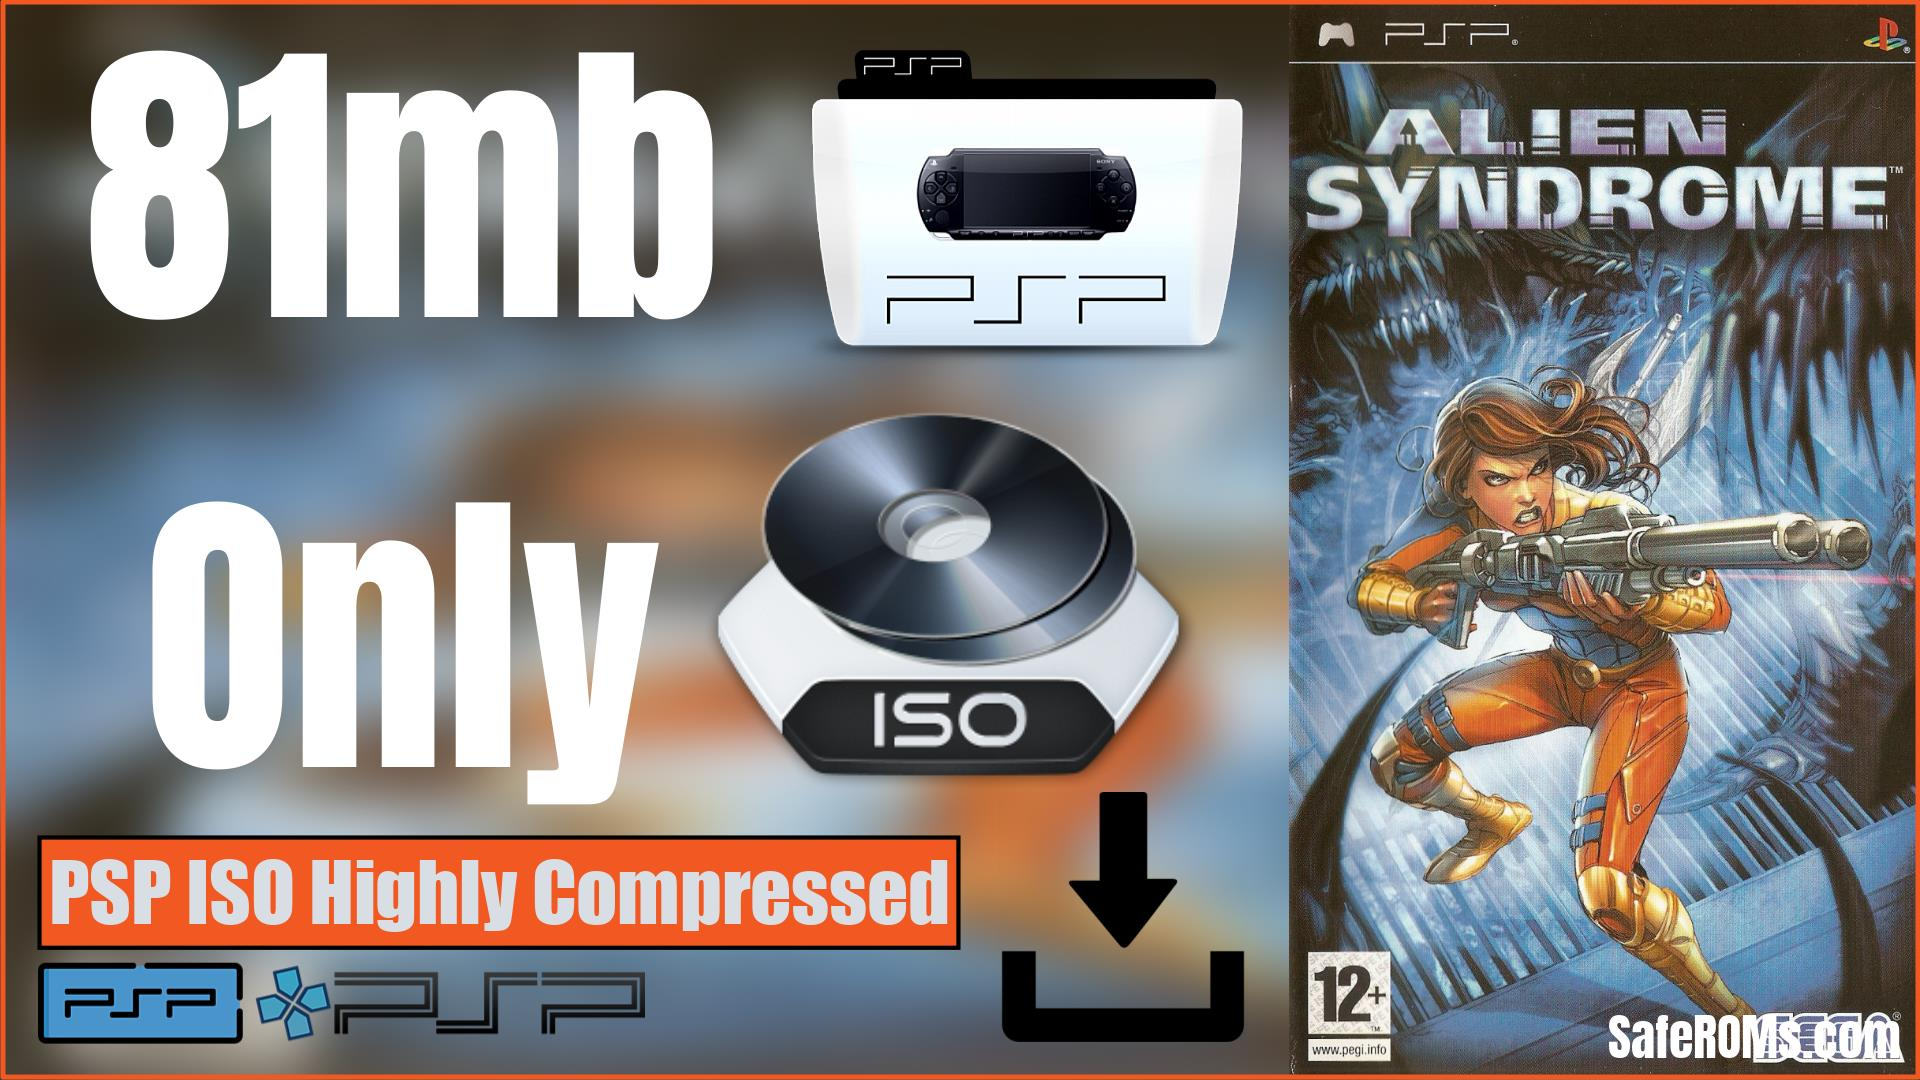 Alien Syndrome PSP ISO Highly Compressed